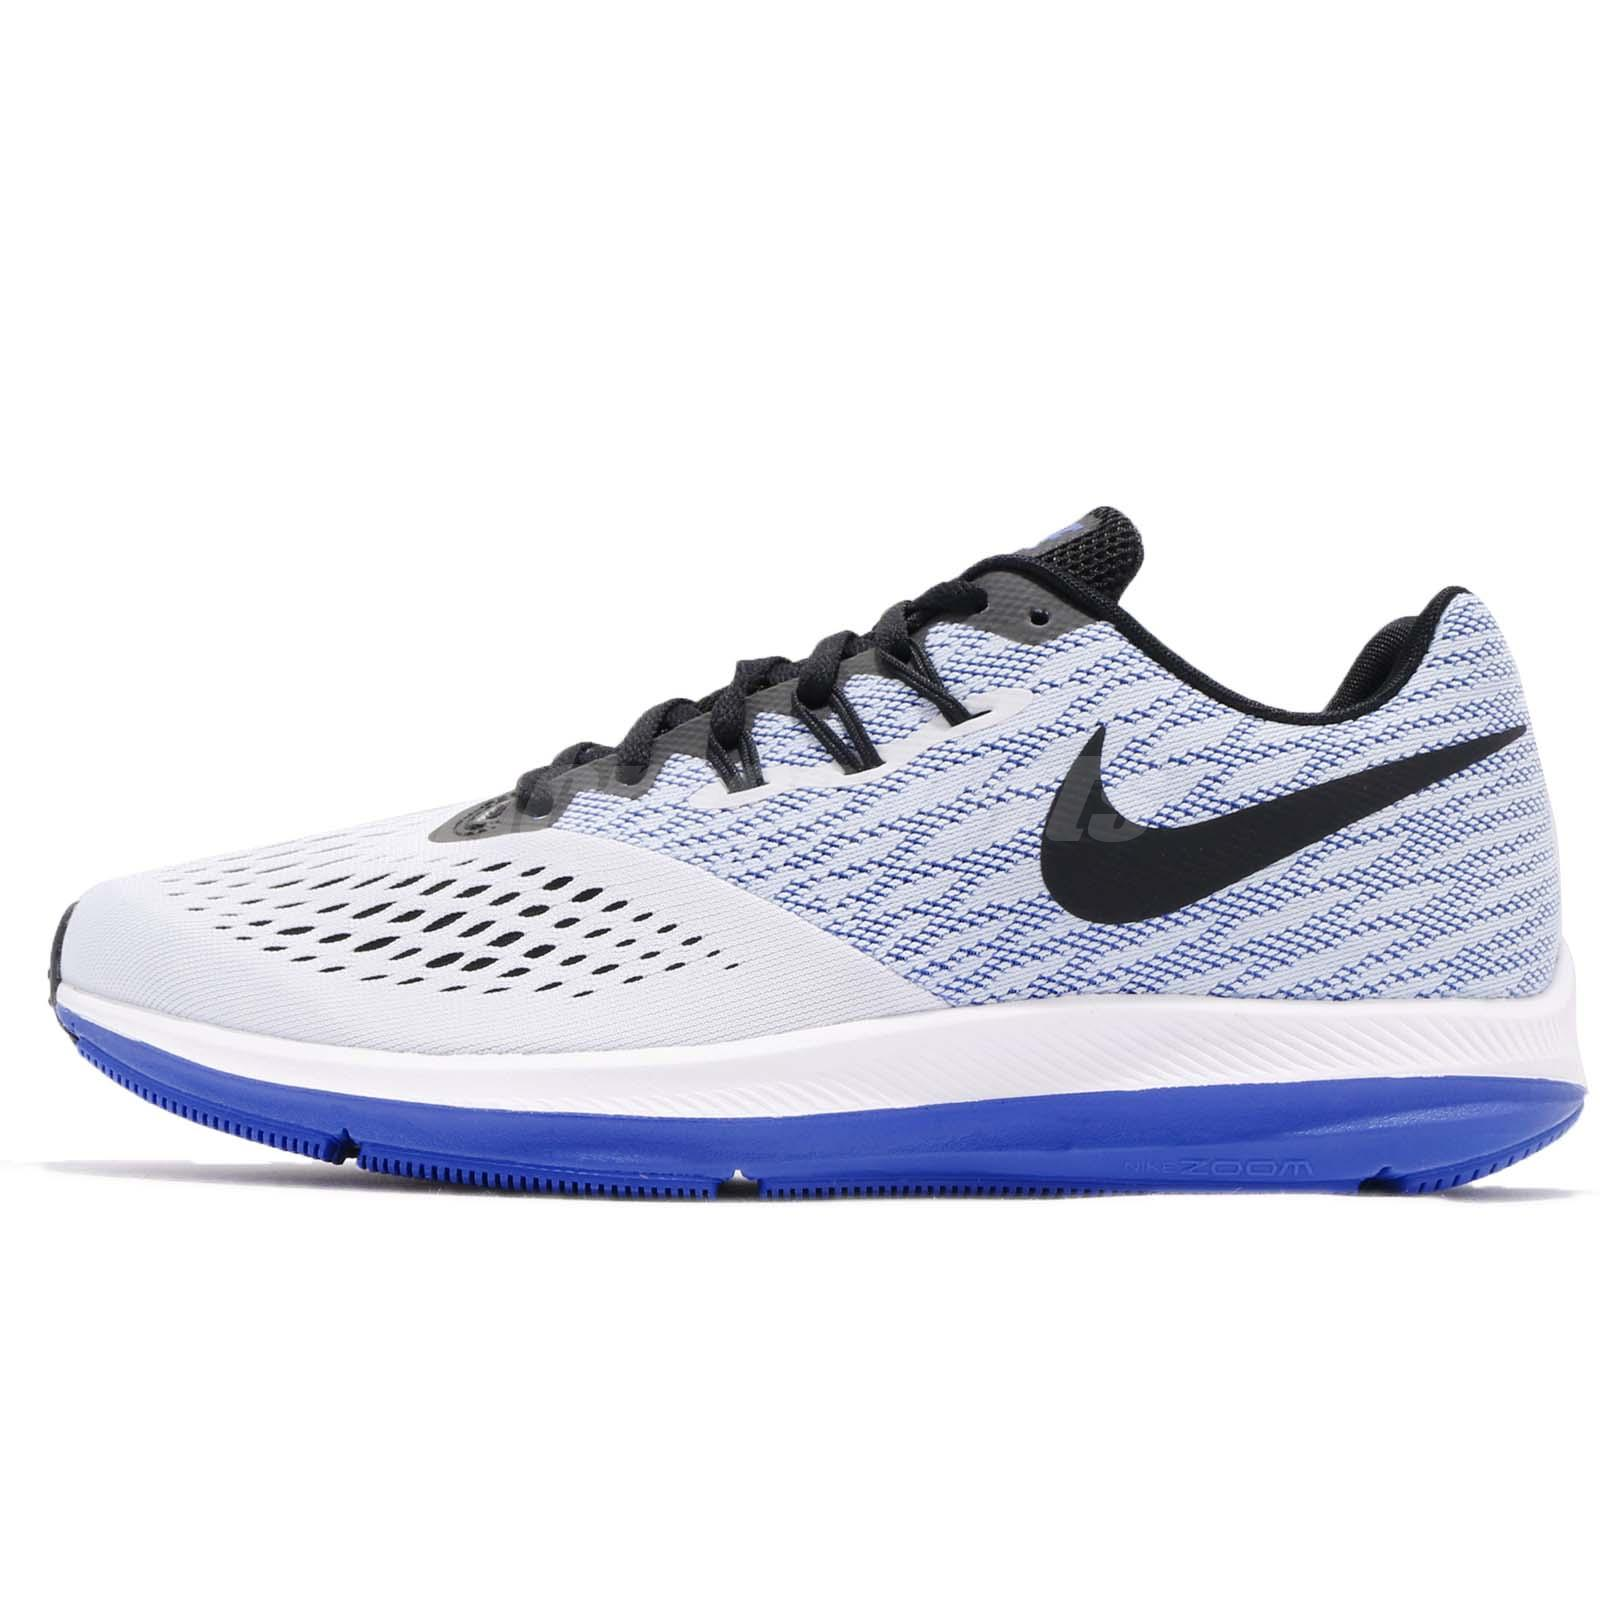 Nike Zoom Winflo 4 IV White Blue Black Mens Running Shoes Trainers 898466- 010 bf42da64d